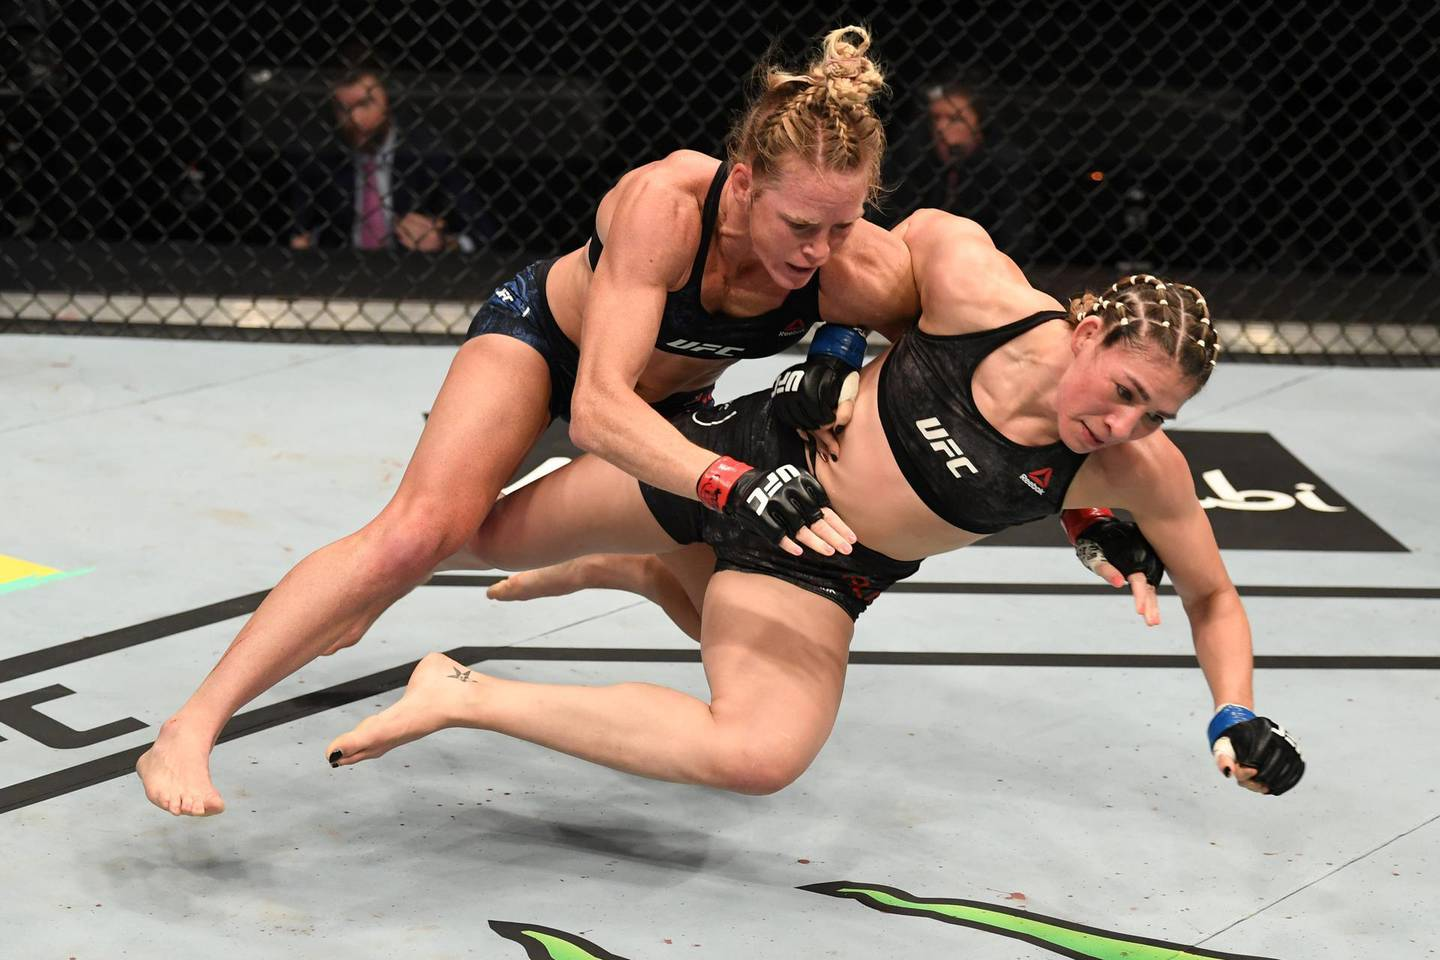 ABU DHABI, UNITED ARAB EMIRATES - OCTOBER 04:  (L-R) Holly Holm takes down Irene Aldana of Mexico in their women's bantamweight bout during the UFC Fight Night event inside Flash Forum on UFC Fight Island on October 04, 2020 in Abu Dhabi, United Arab Emirates. (Photo by Josh Hedges/Zuffa LLC)